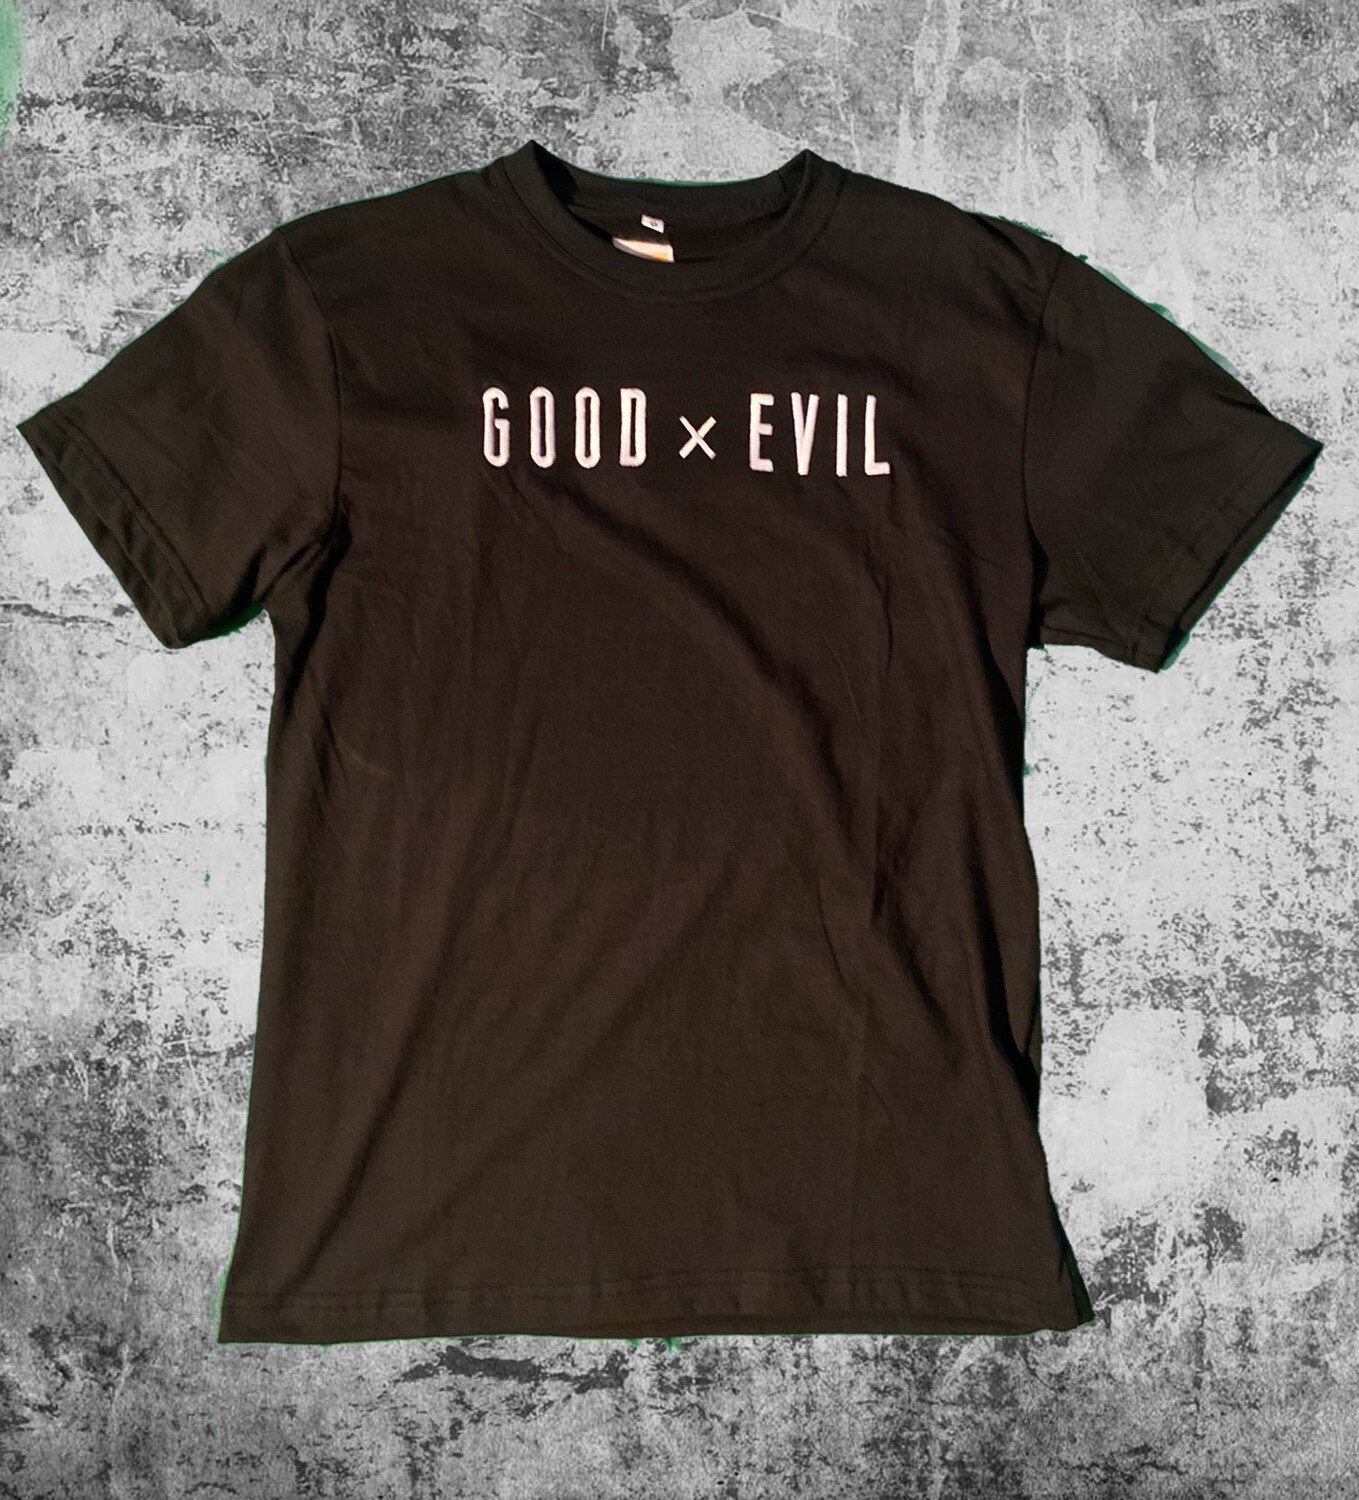 Good X Evil Embroidered (words)